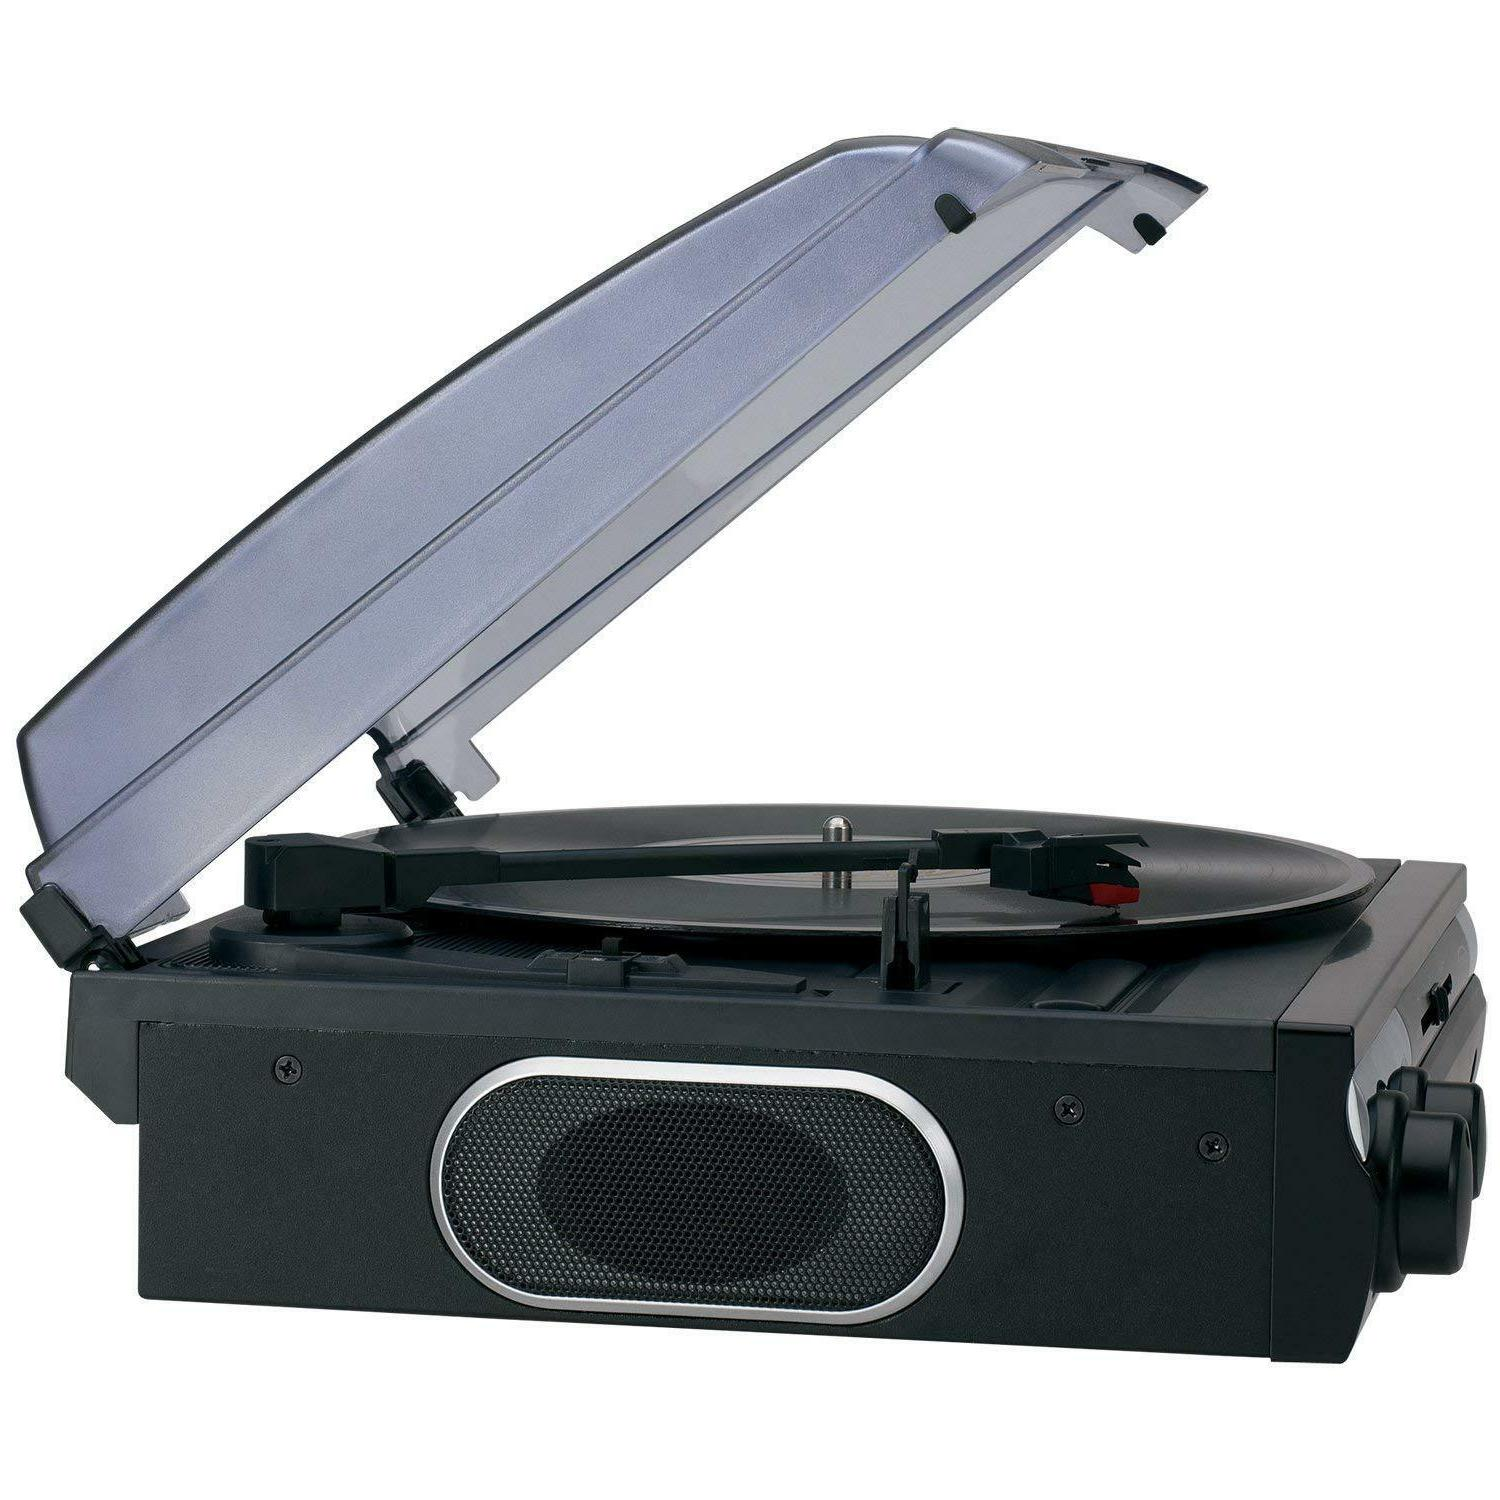 Jensen Stereo Record Player Turntable Built-in Speakers